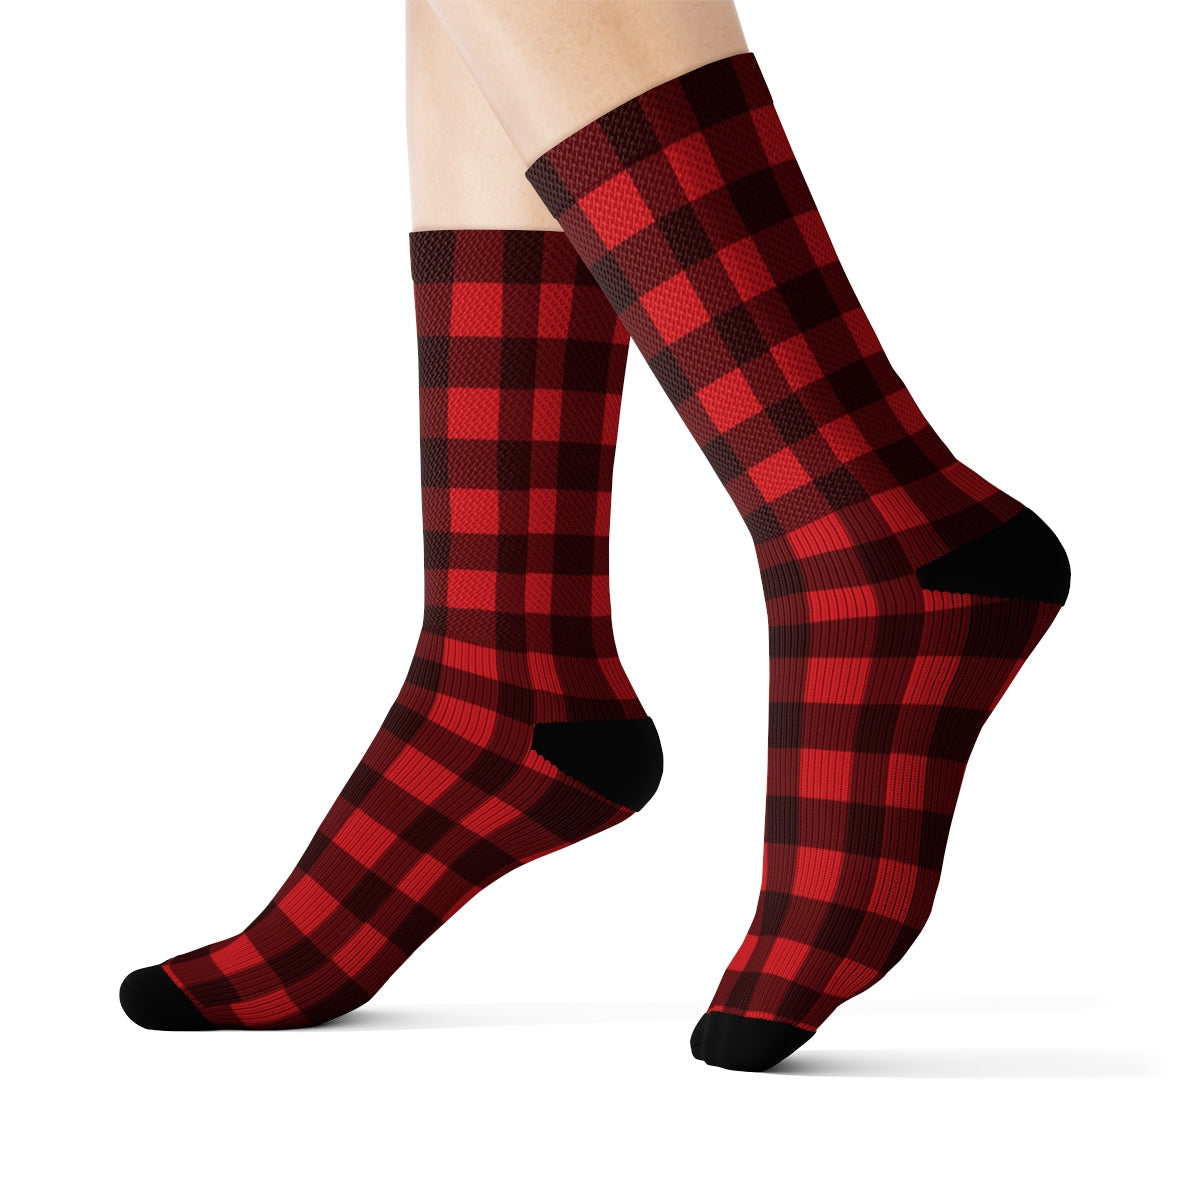 Buffalo Plaid Socks, 3D Printed Sublimation Red black Check Lumberjack Women Men Fun Cool Funky Casual Cute Unique Socks - Starcove Design